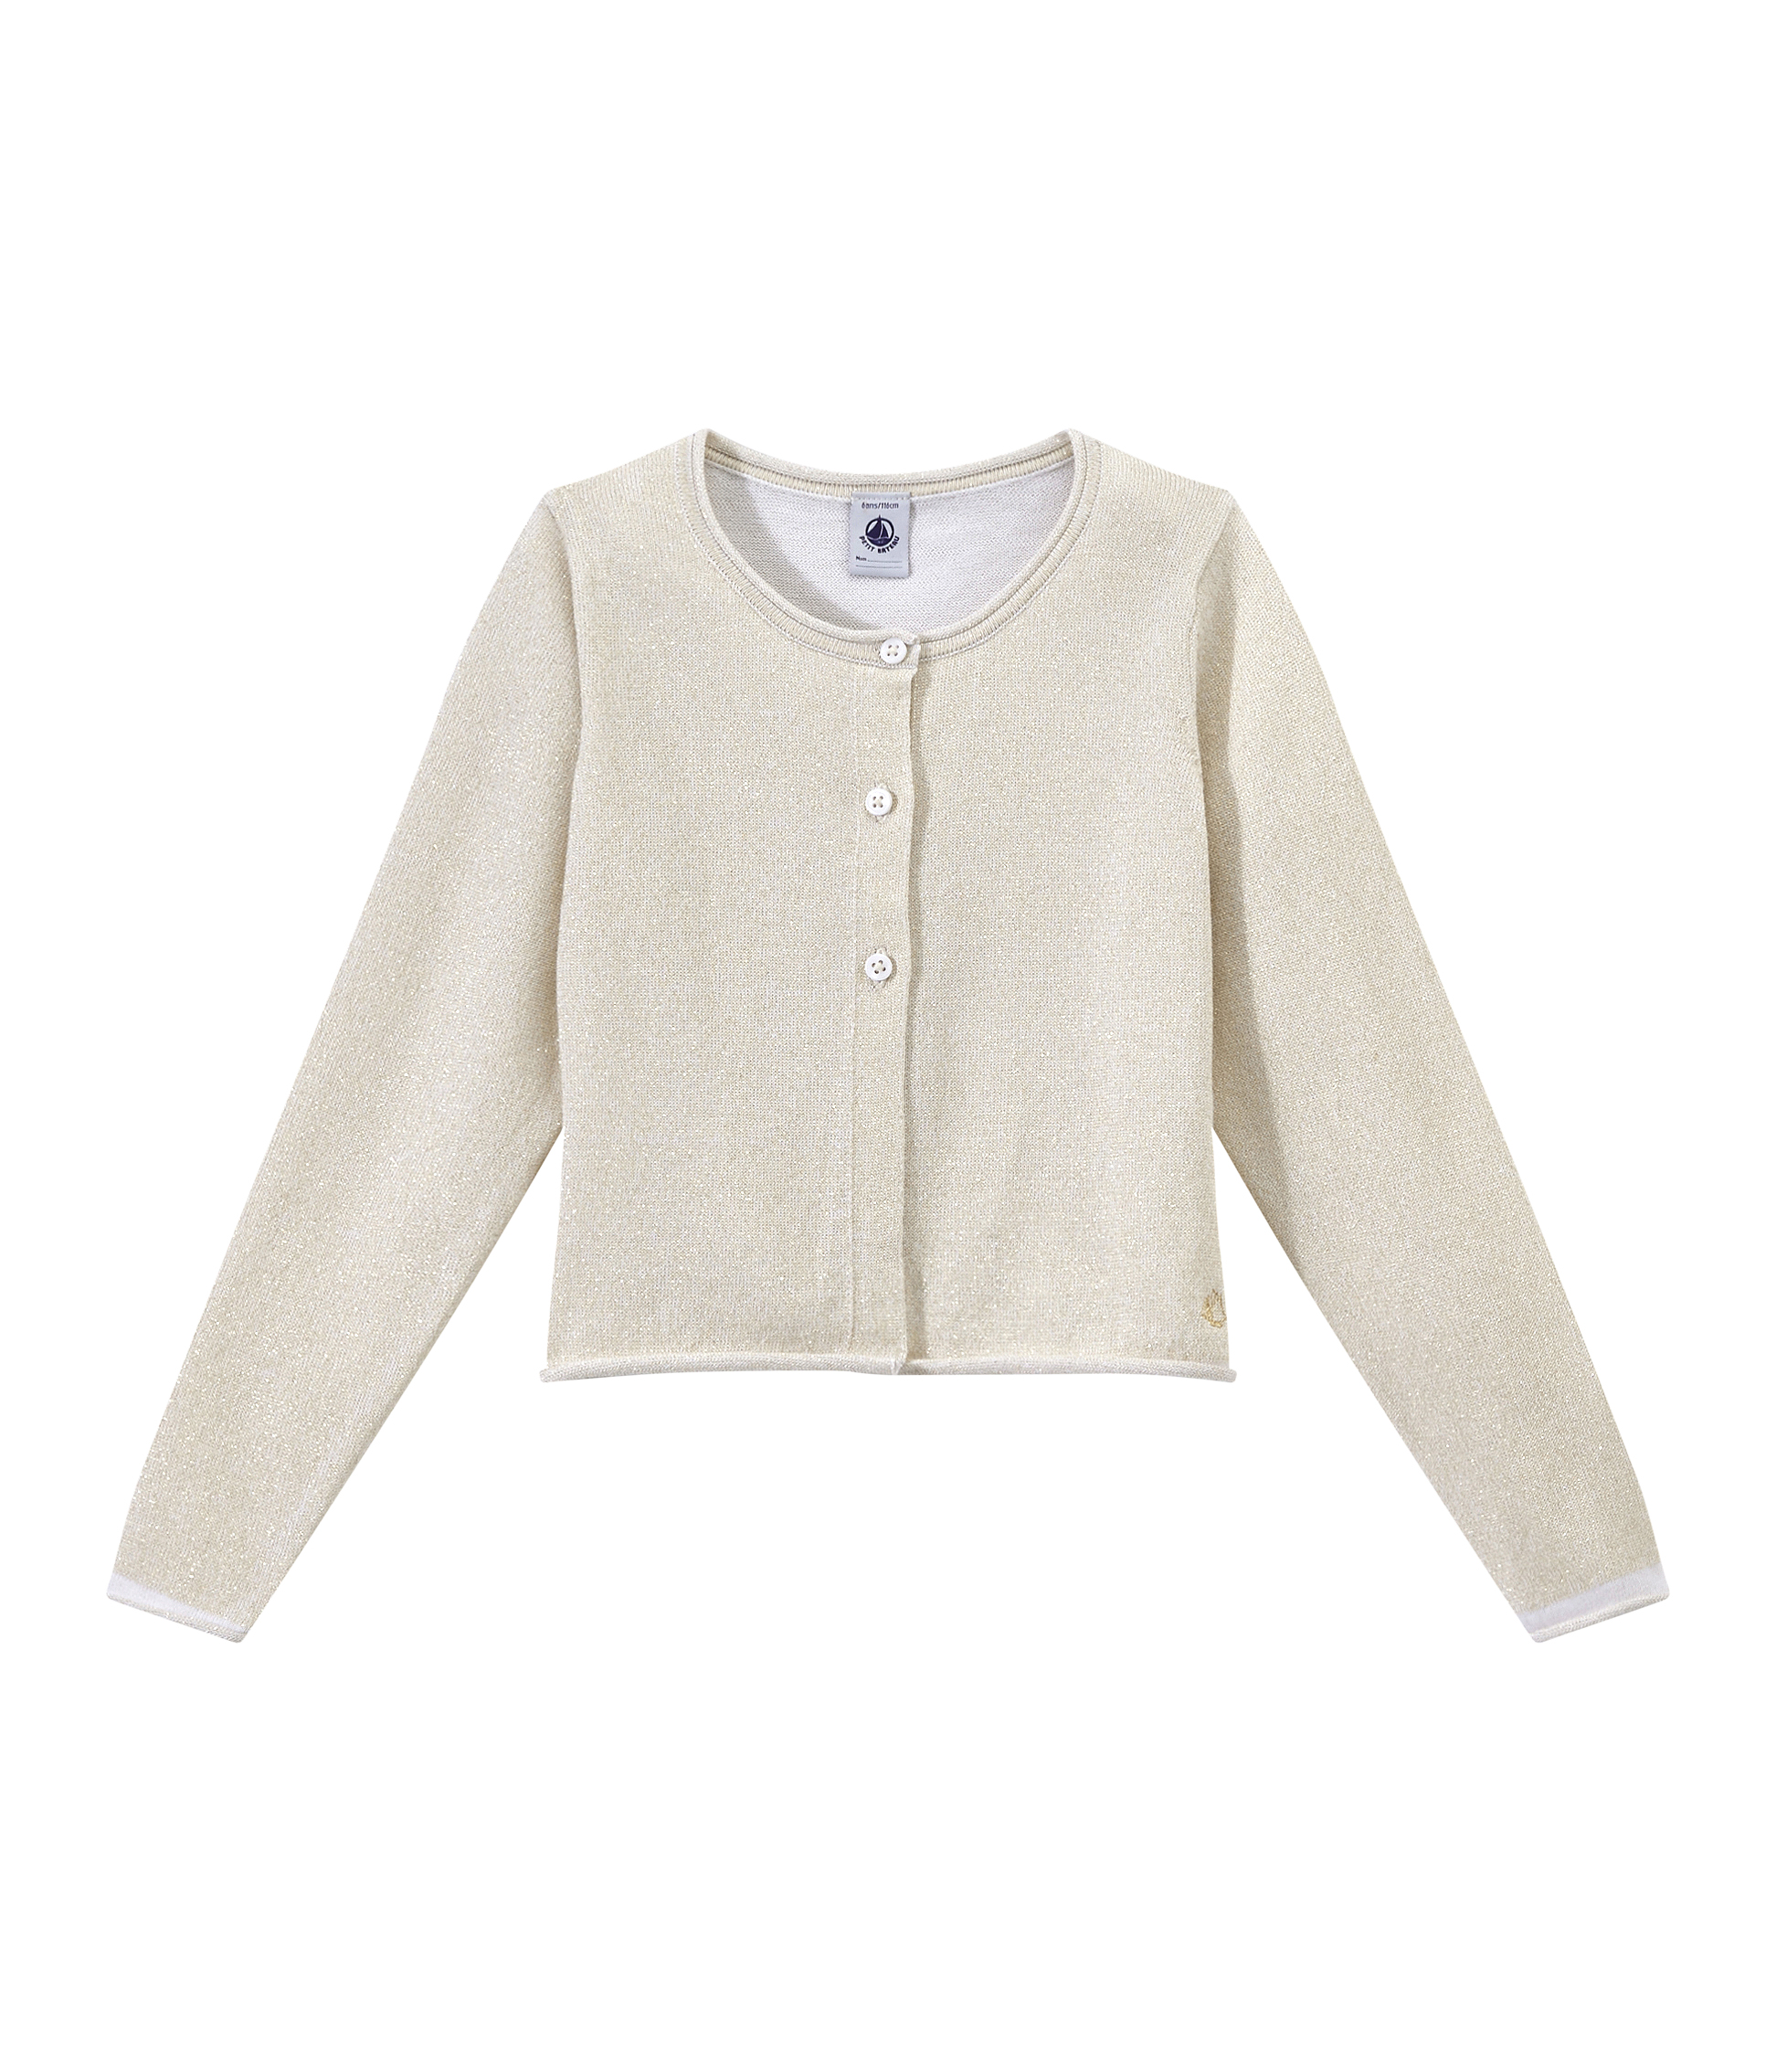 Girls' Formal Cardigan